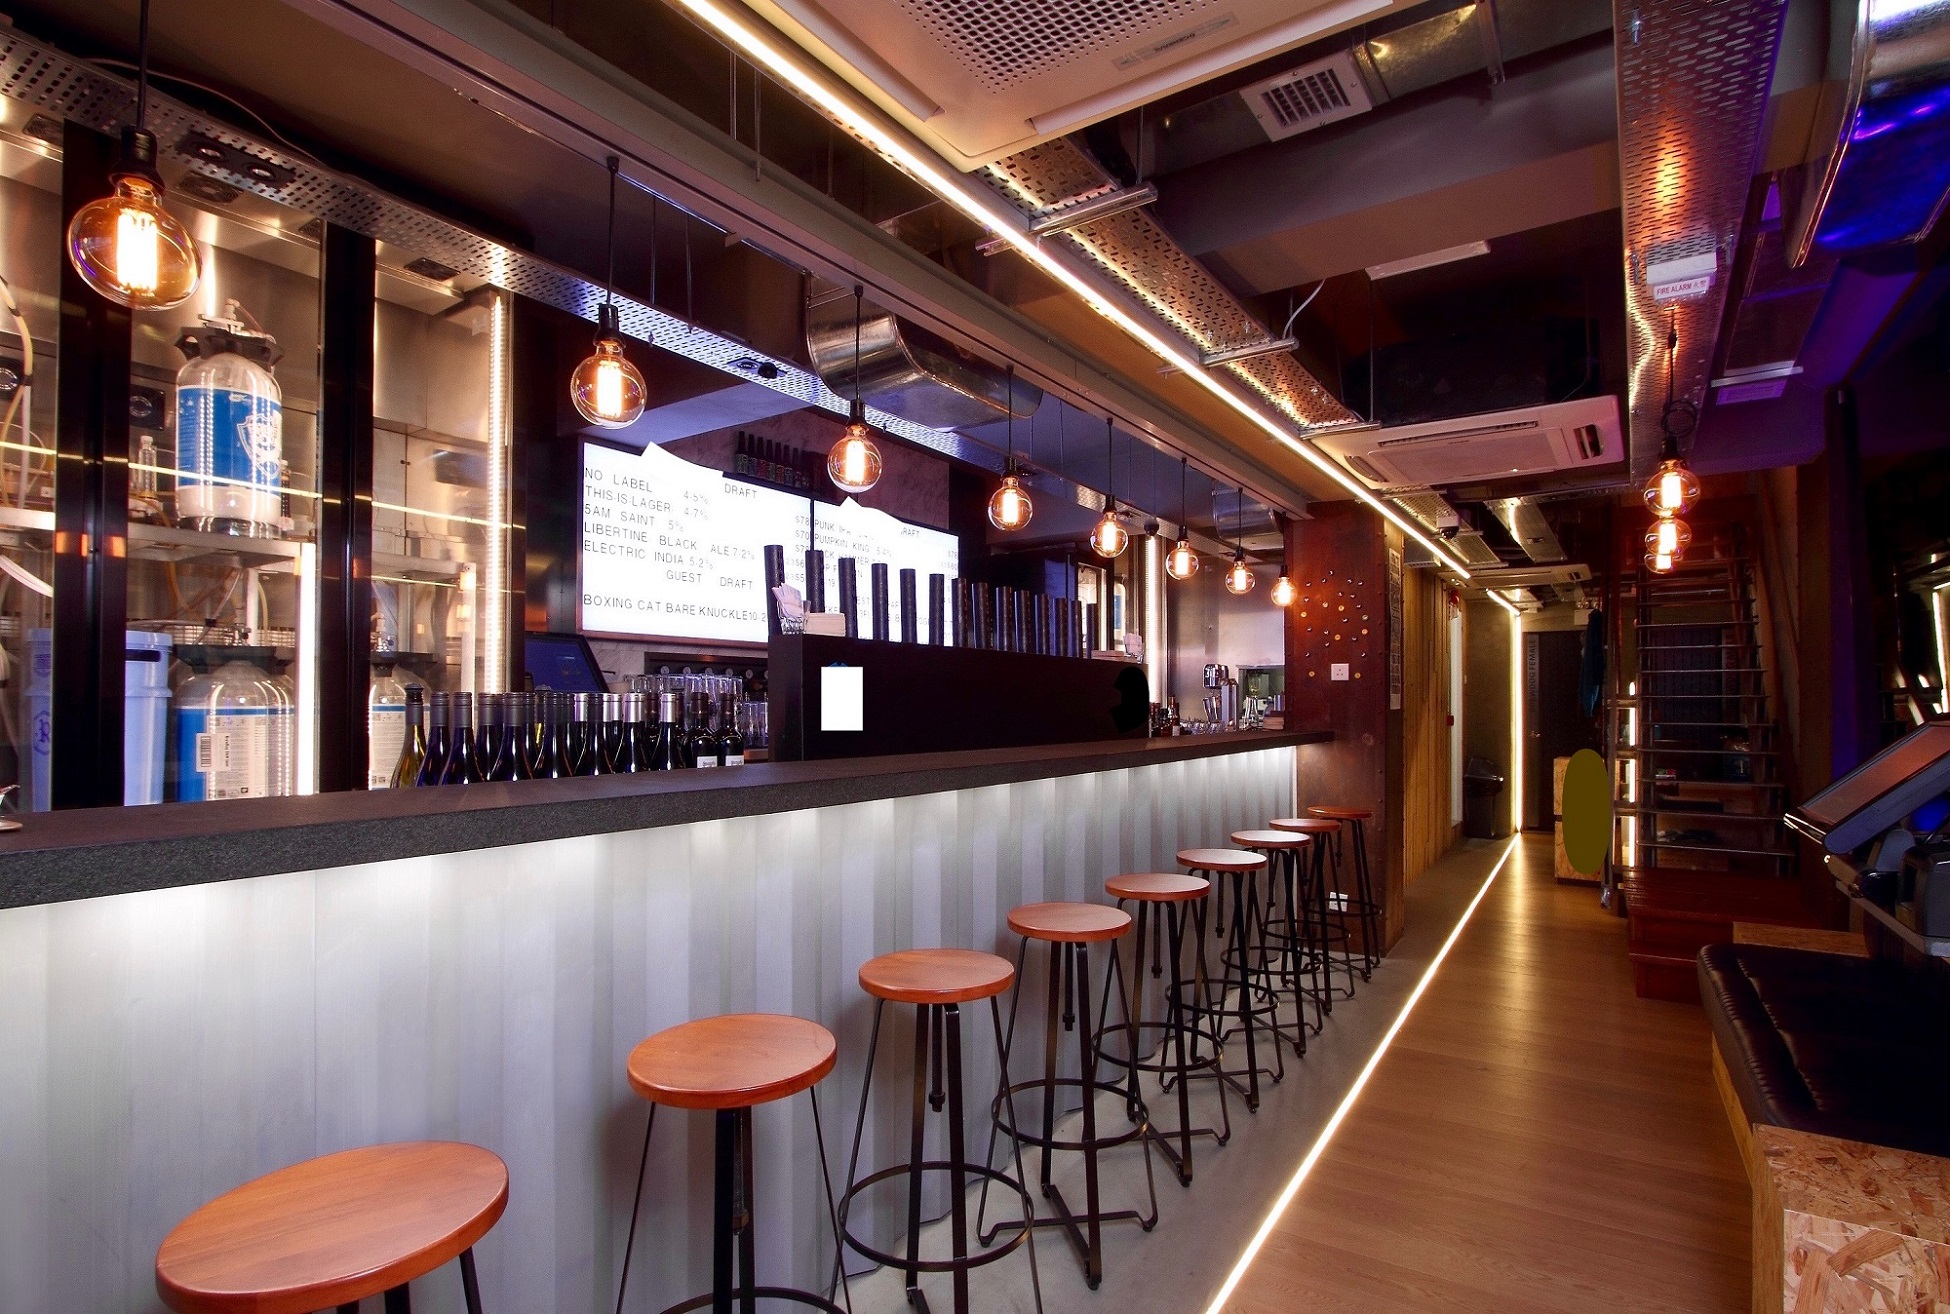 Central bar space lease Hollywood Road